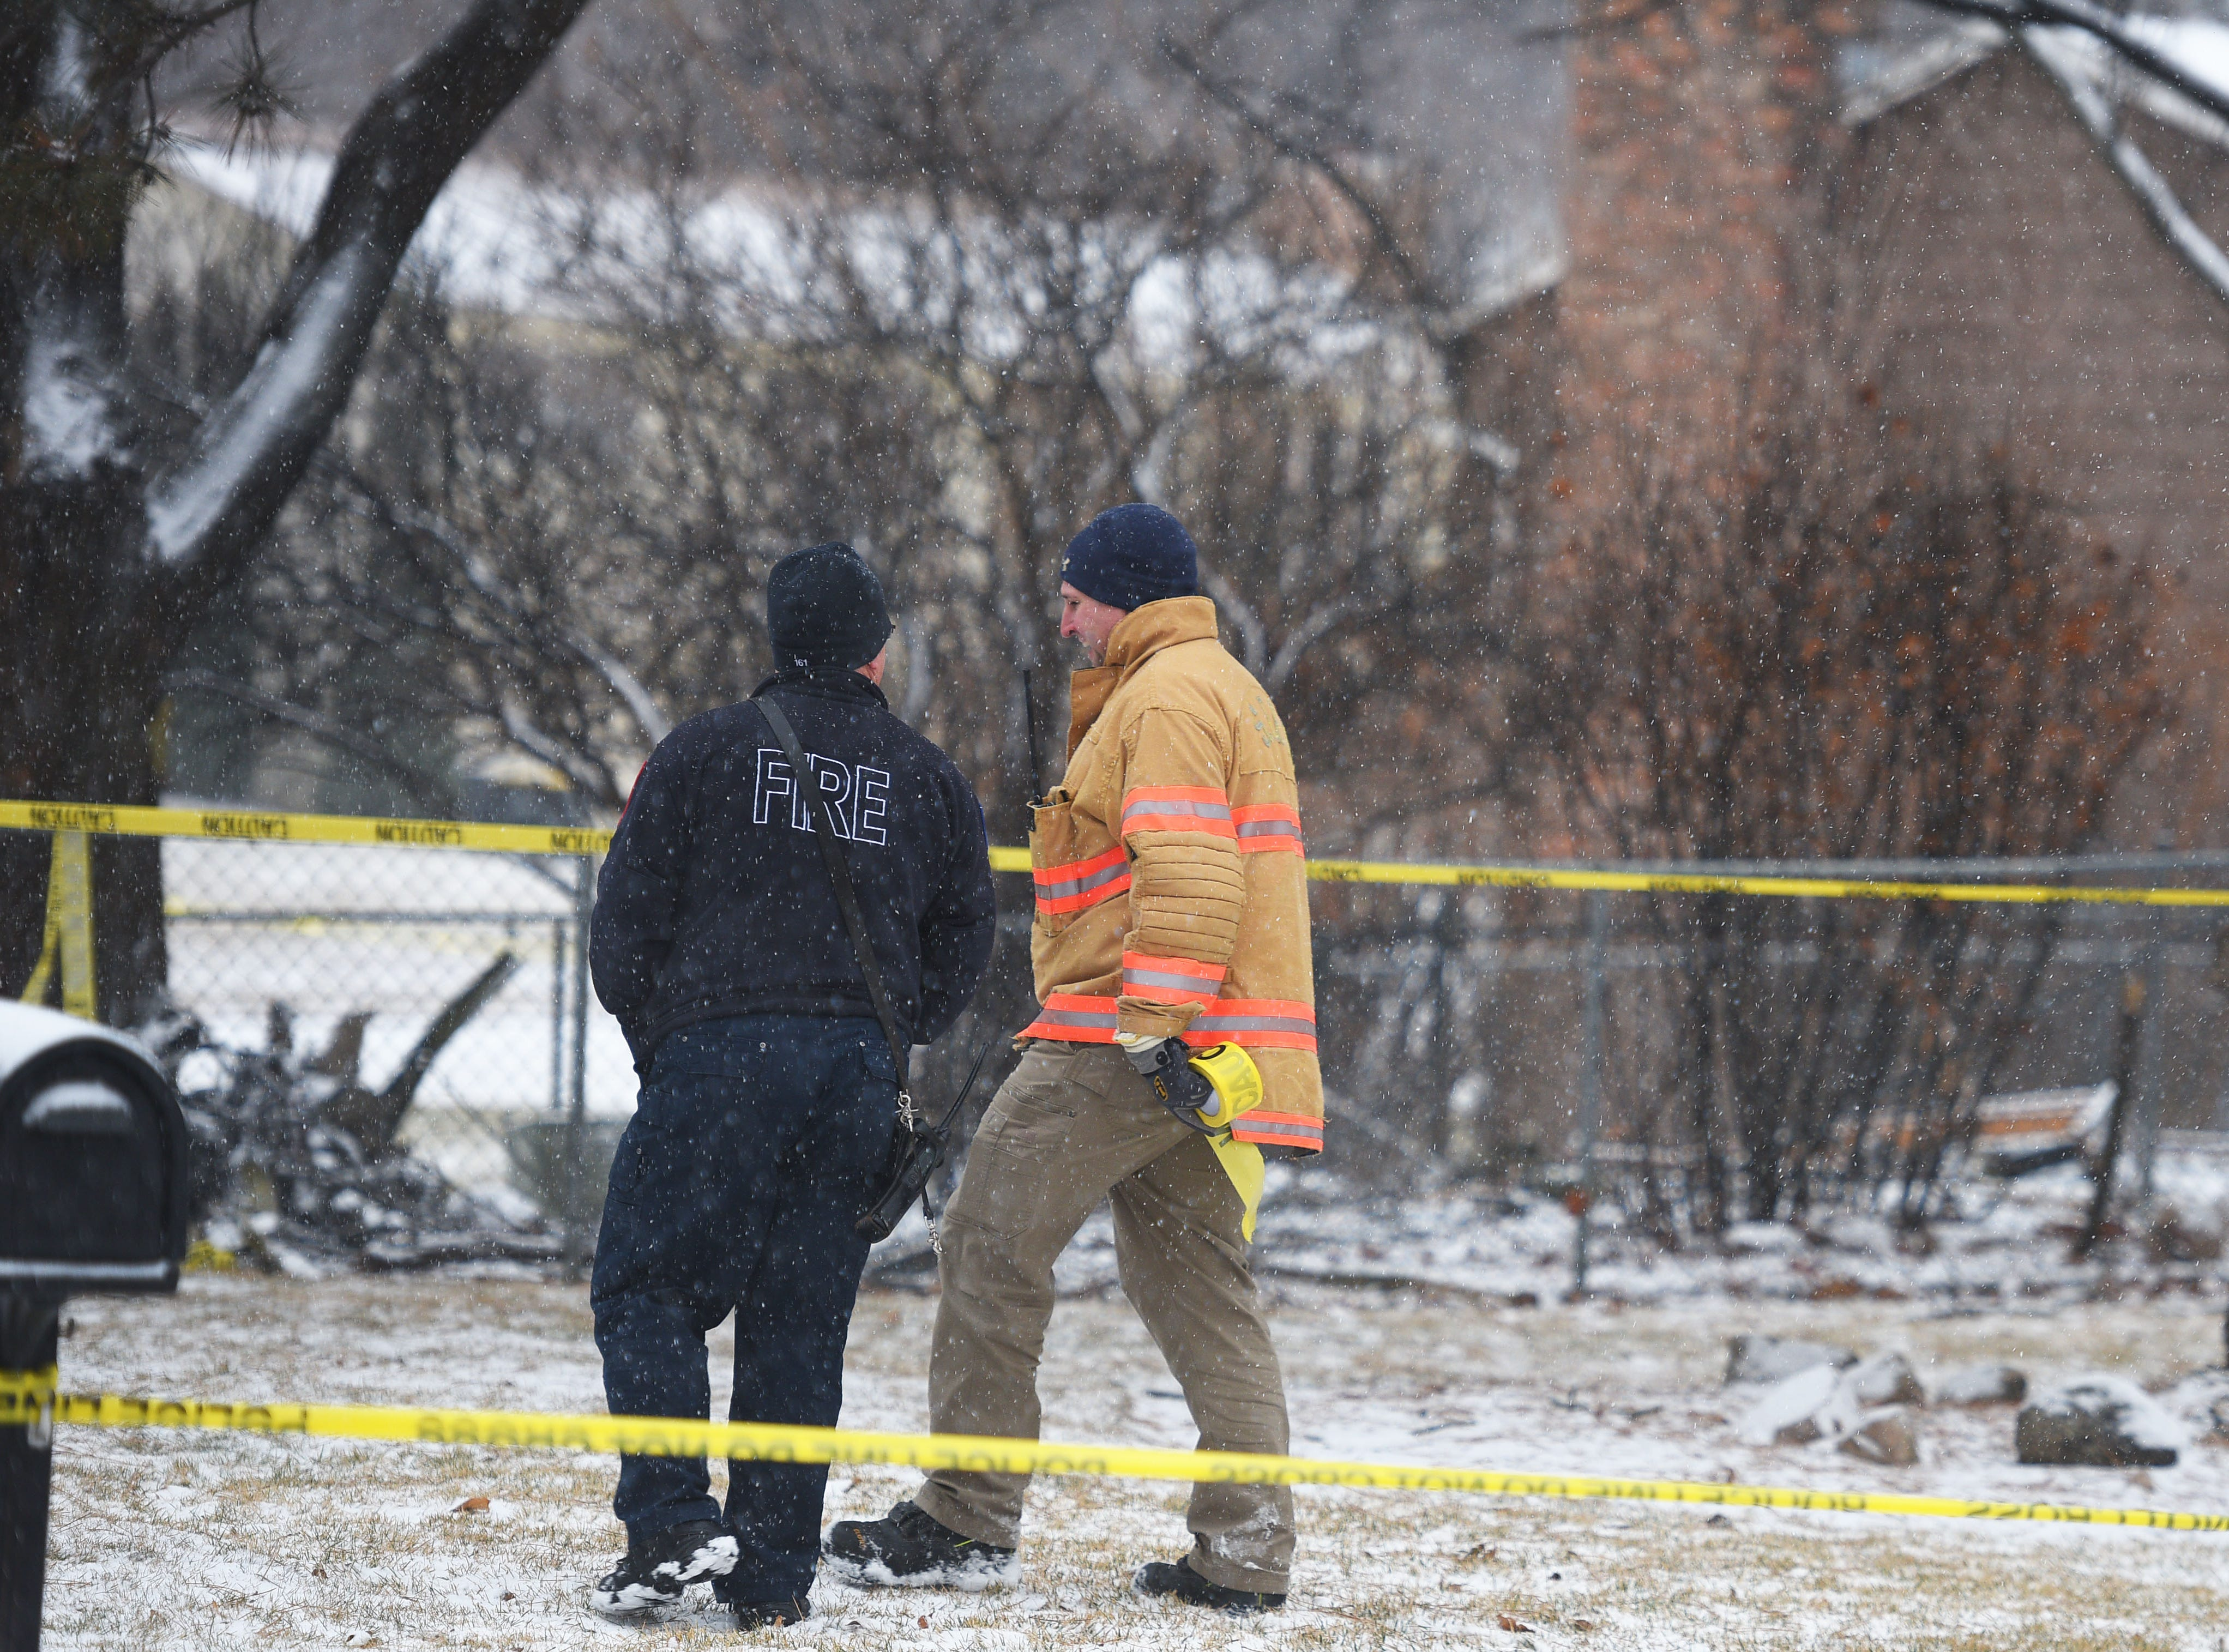 Fire and police monitor the home of Pat and Tim Brodkorb at 4213 S Birchwood Wednesday, Dec. 26, in Sioux Falls. A plane crashed into their backyard Tuesday night. The crash caused the back of their home to catch fire. Nearby homes were still evacuated.